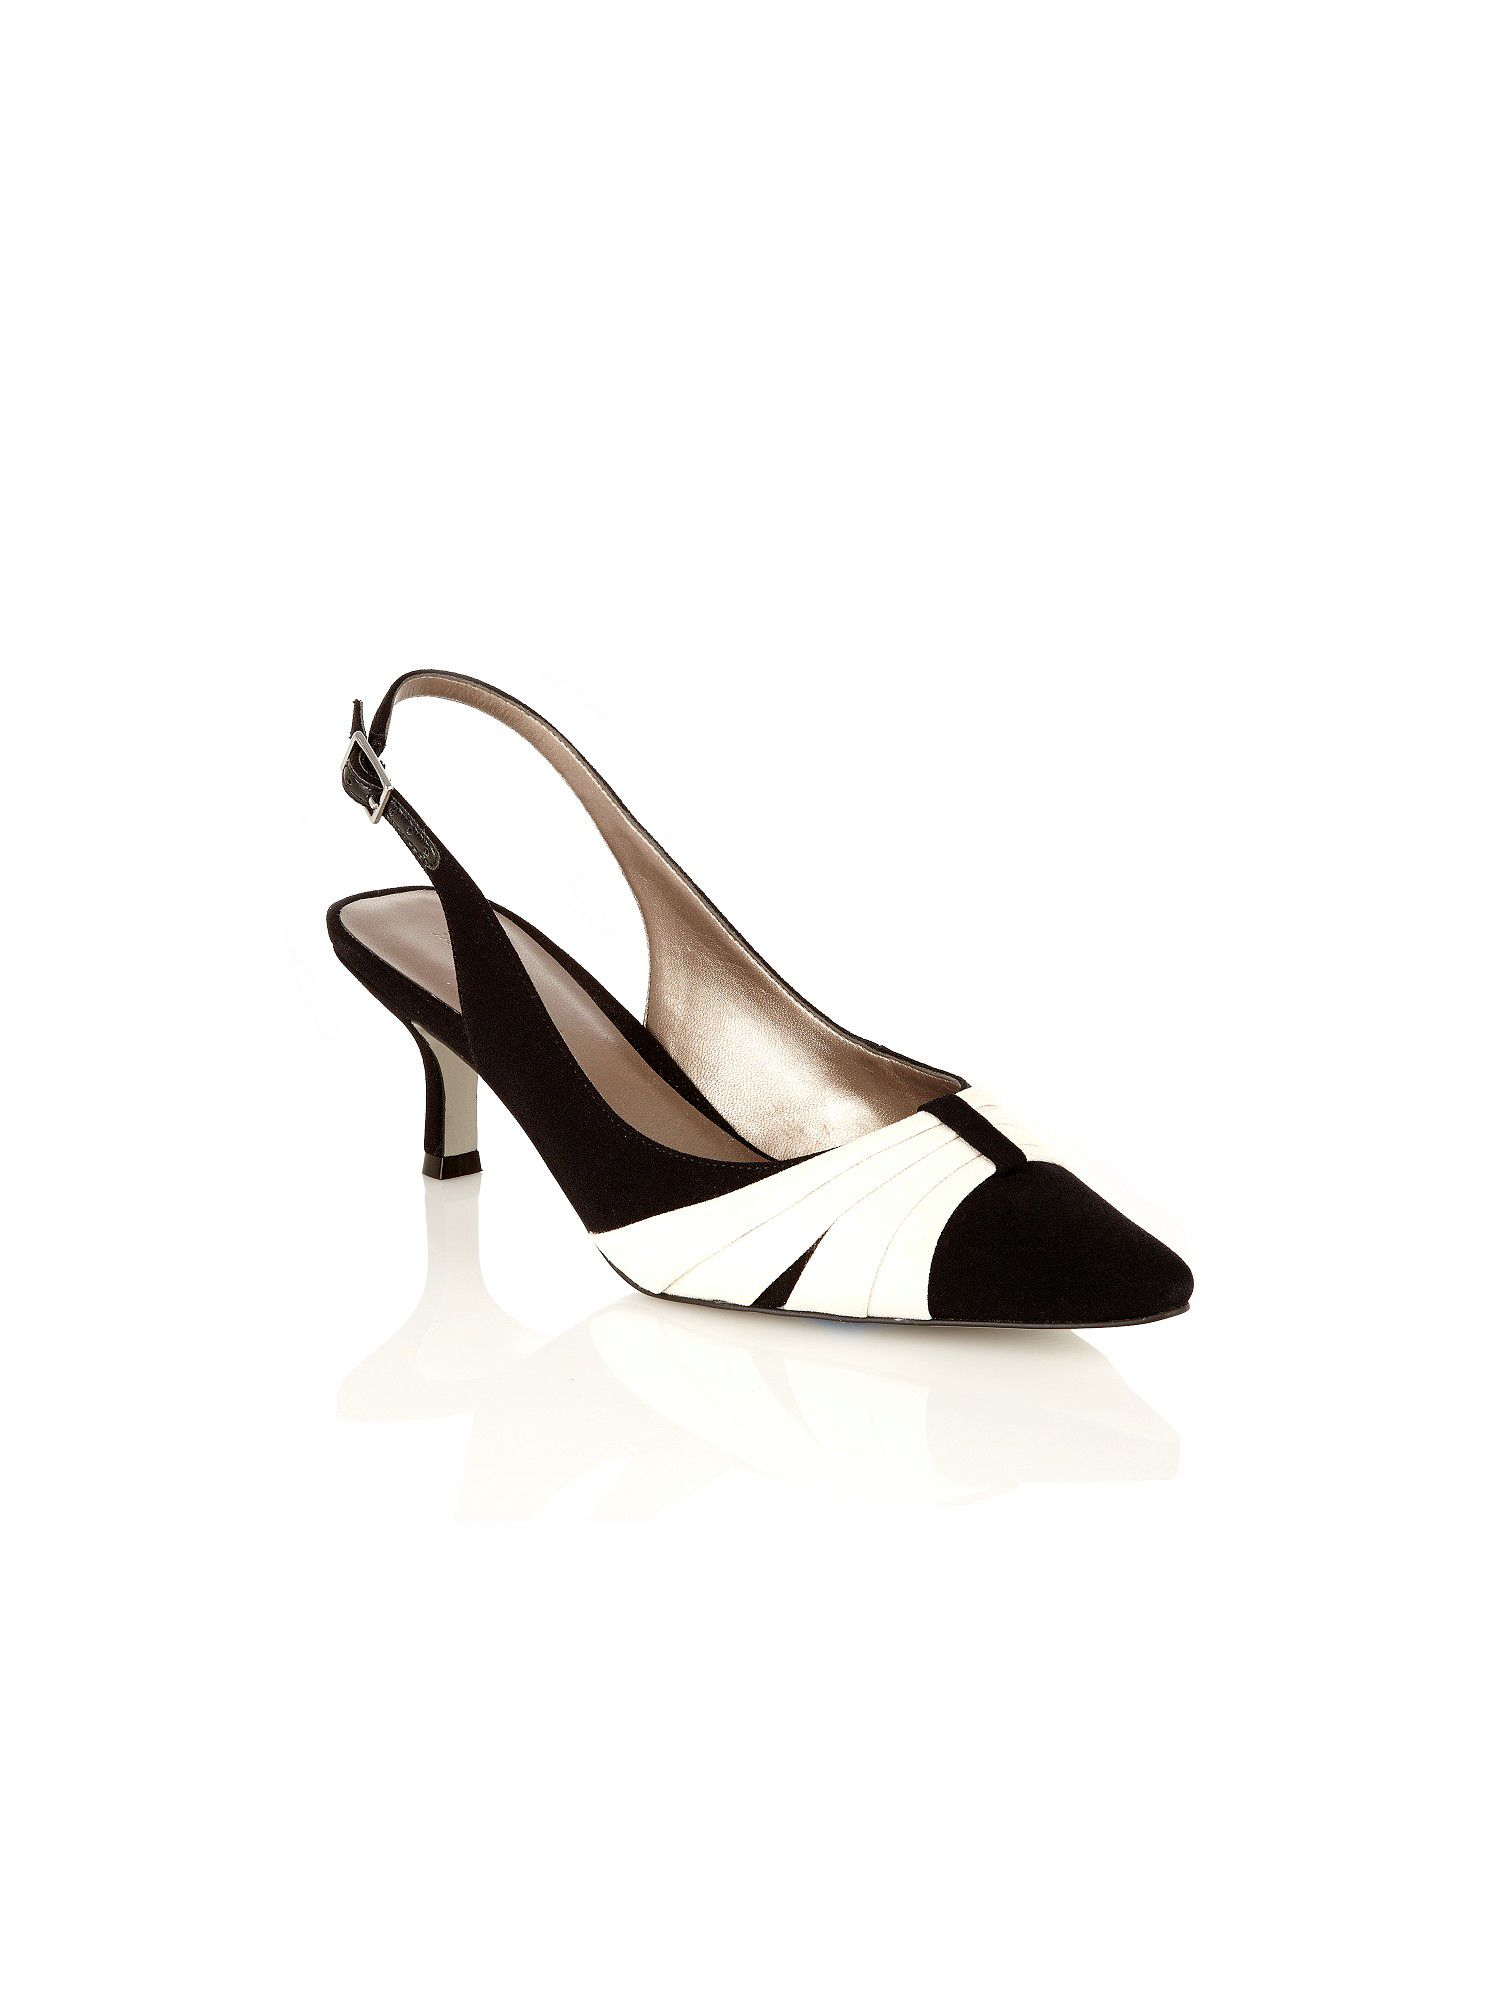 Black pleat trim shoes